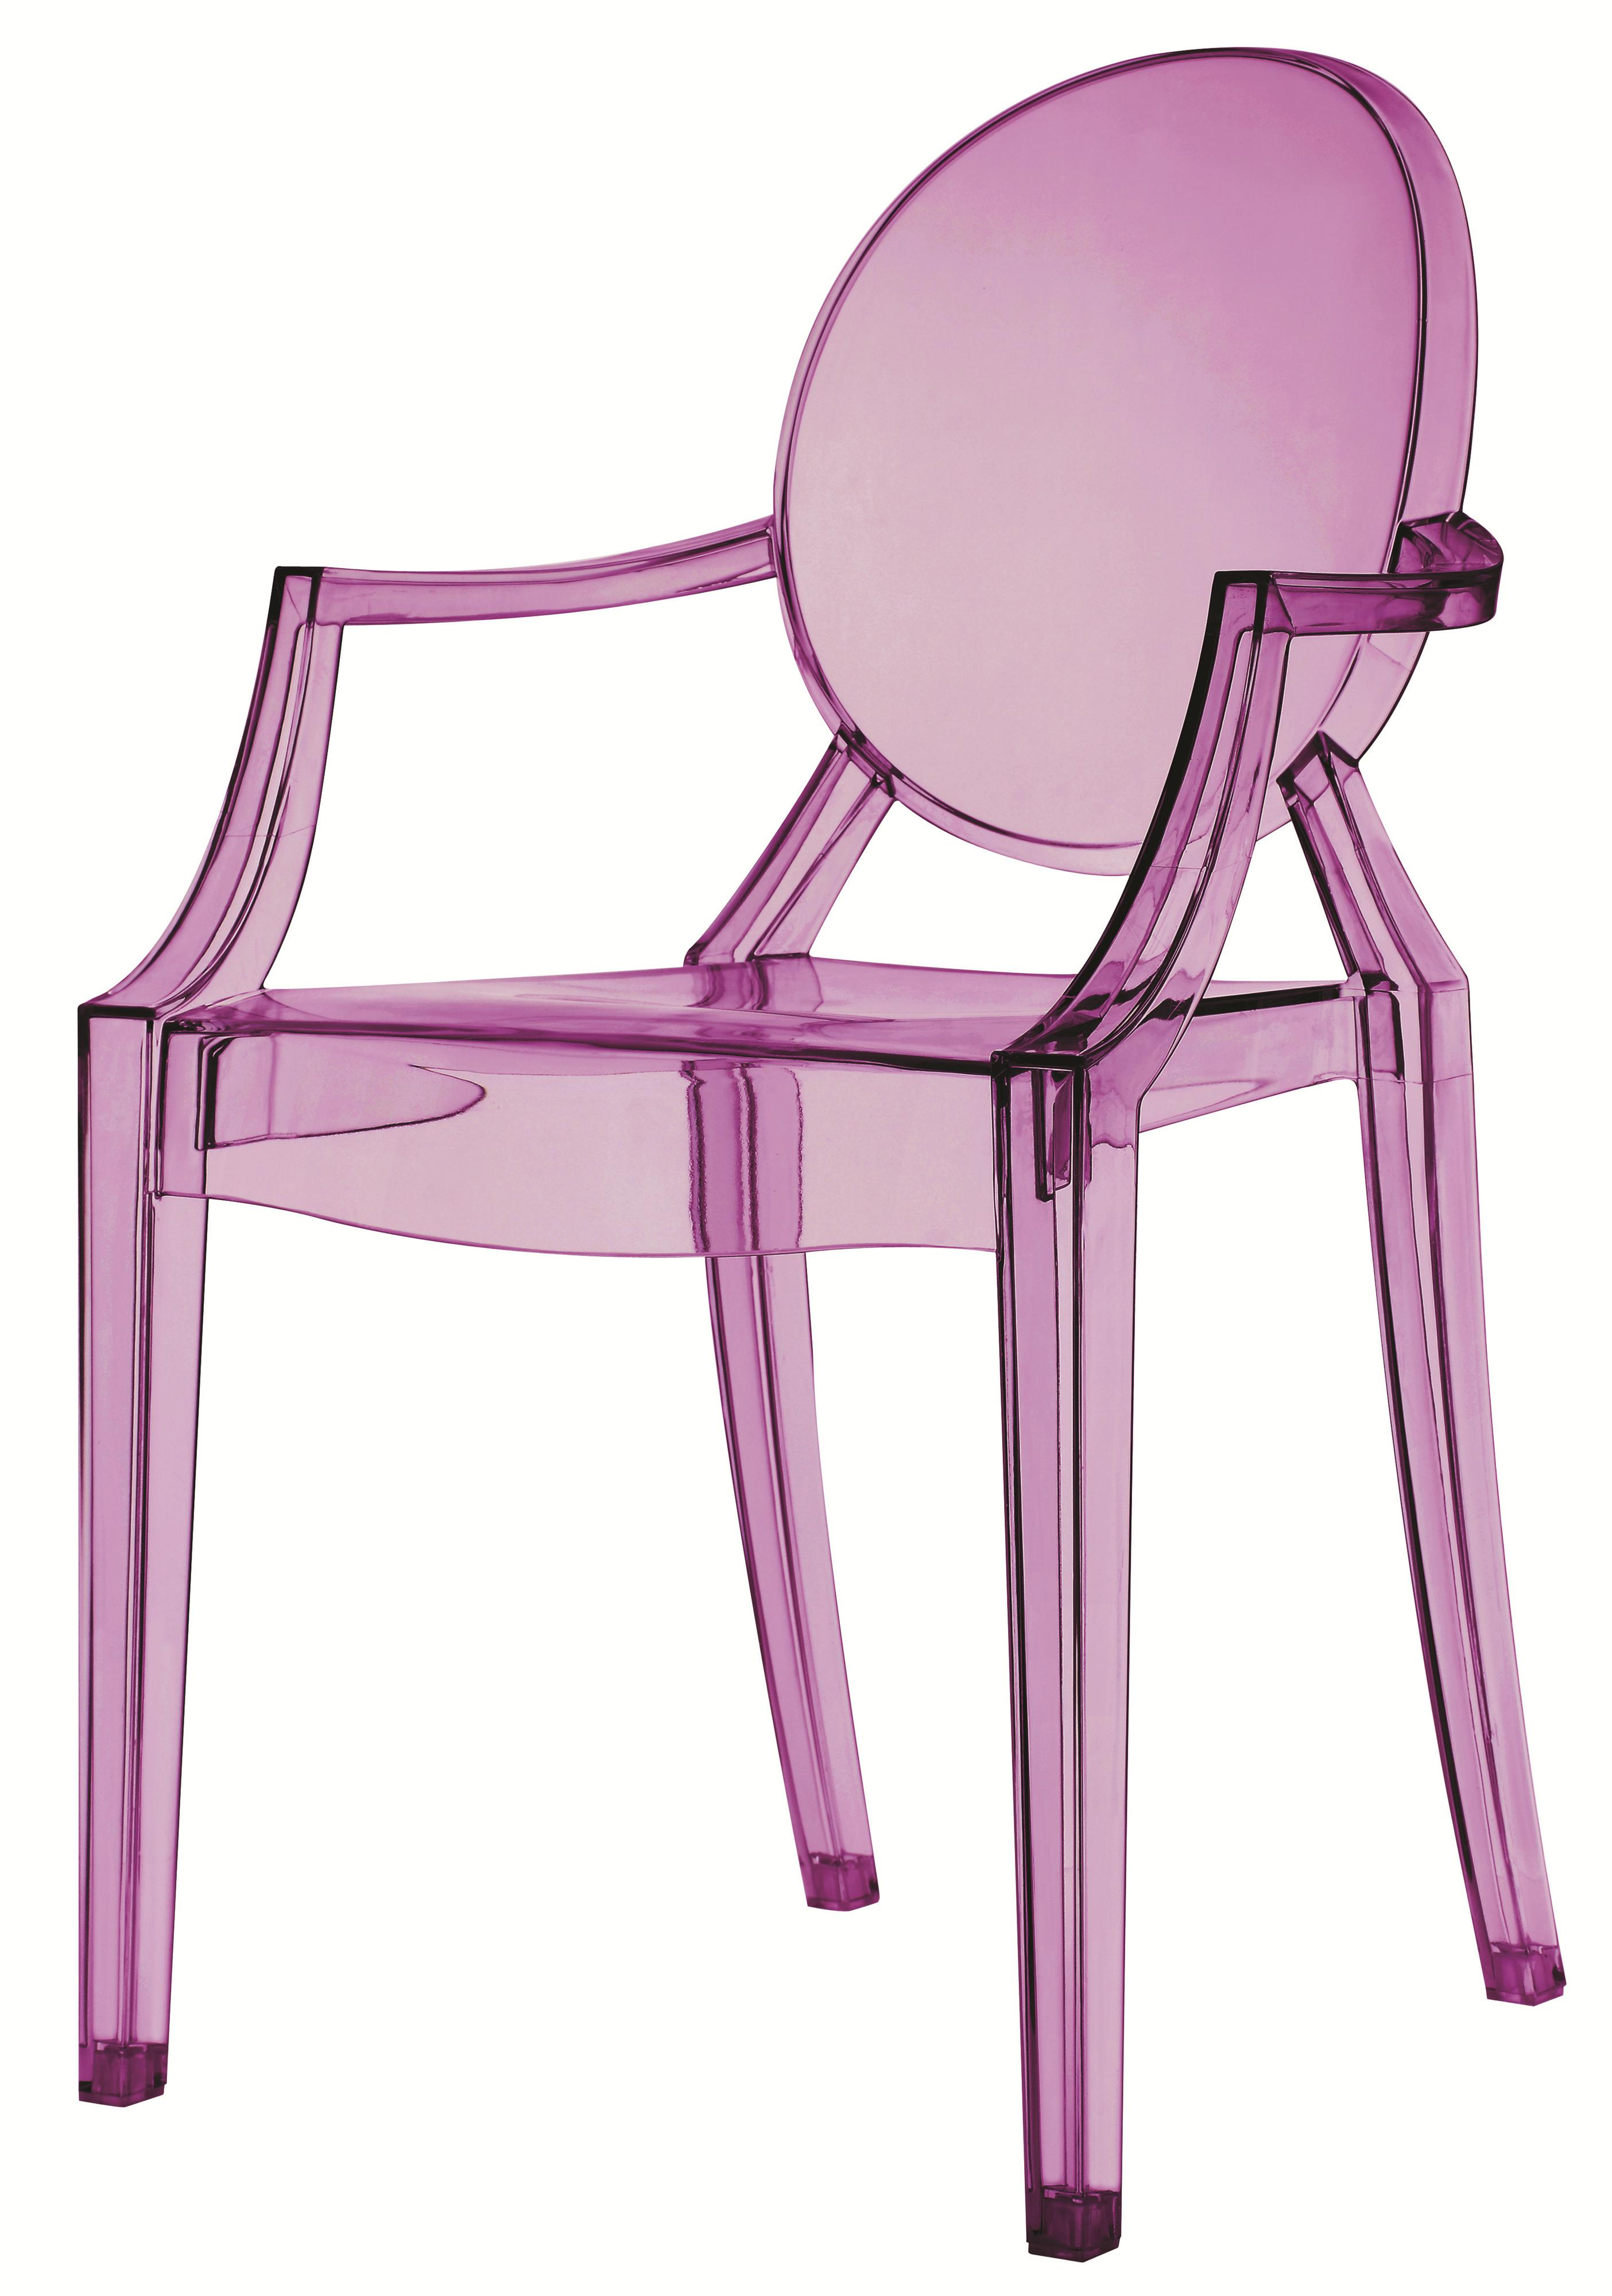 Accent Seating Stackable Clear Purple Chair with Round  : Accent Seating900545 b1 from furniturewares.com size 2808 x 4000 jpeg 515kB